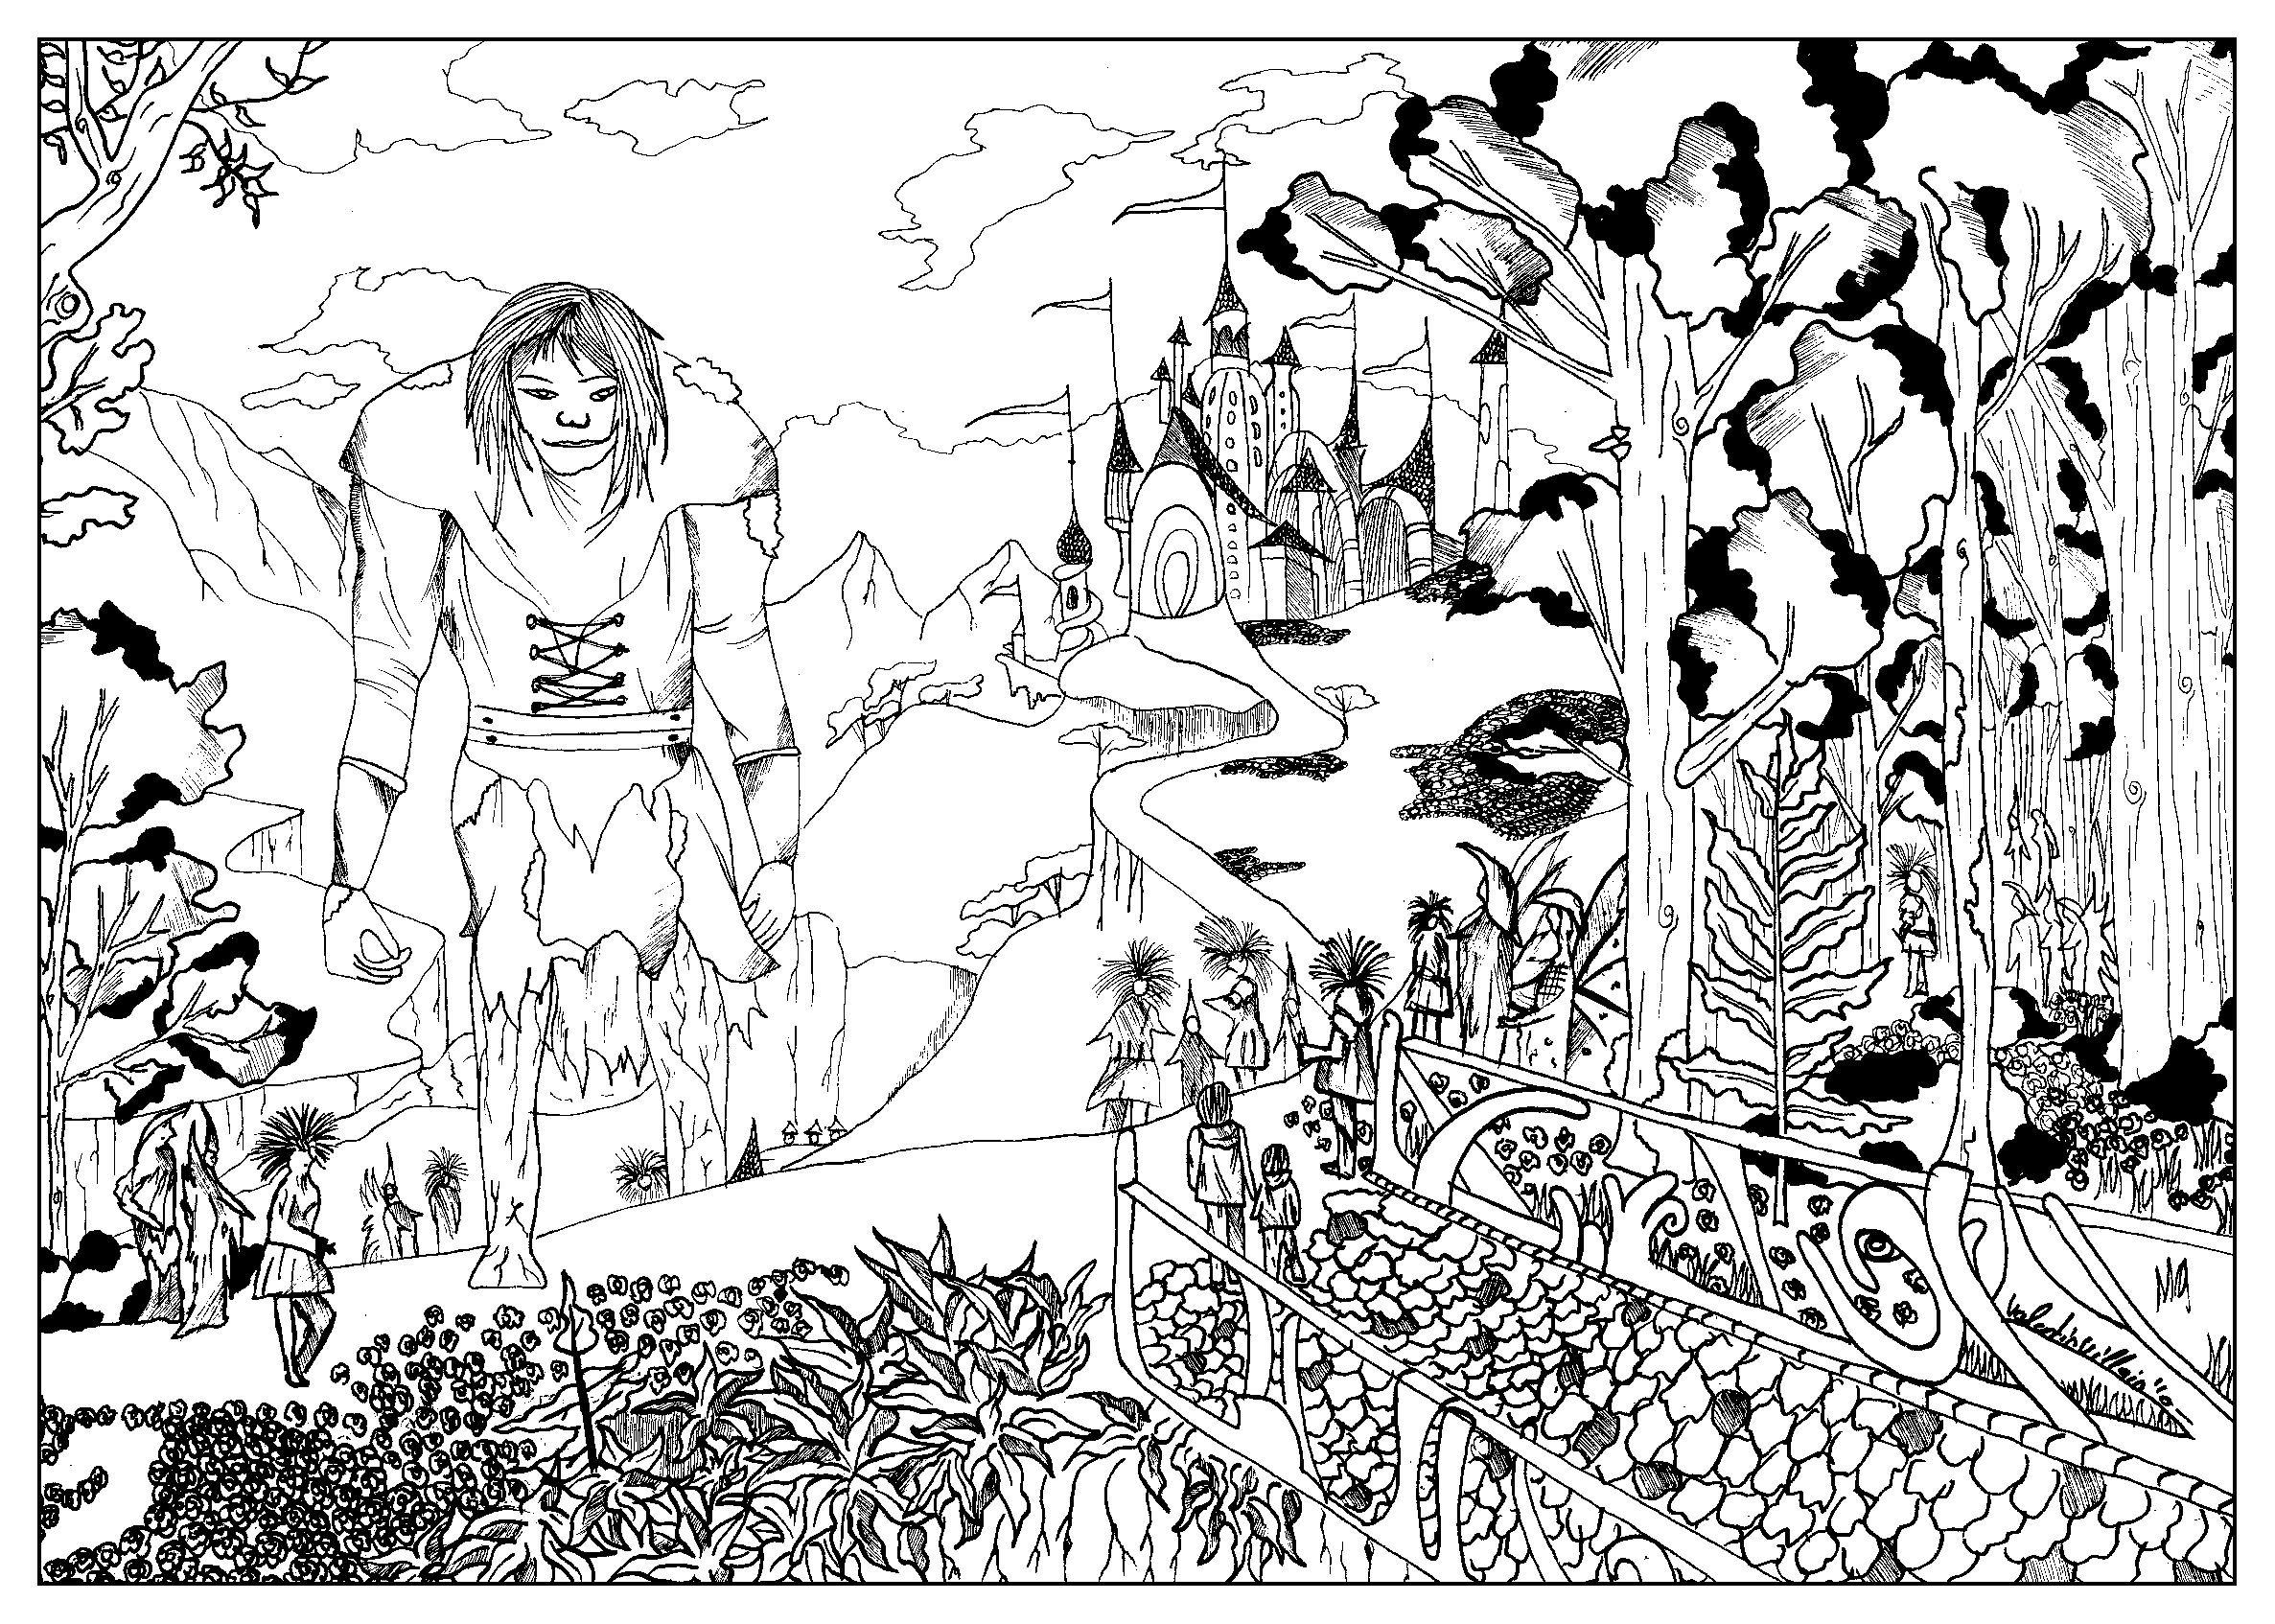 Coloring Page Inspired By The Movie Bridge To Terabithia With A Giant A Castle And A Mysterious Forest Coloring Pages Family Coloring Pages Family Coloring